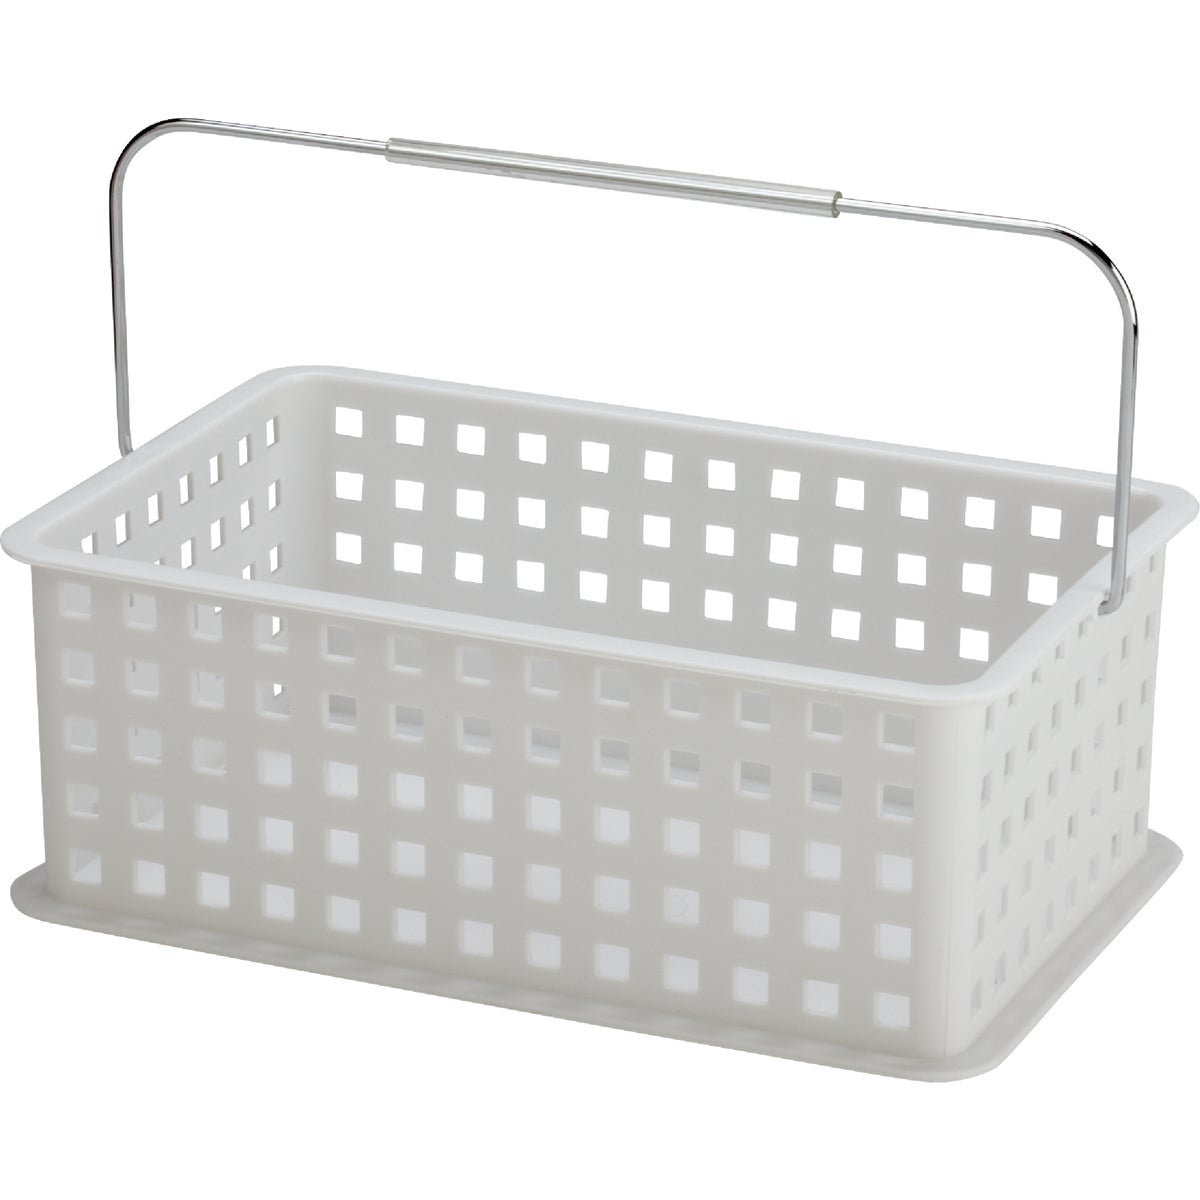 MEDIUM PLASTIC BASKET - 46301 by Interdesign Inc